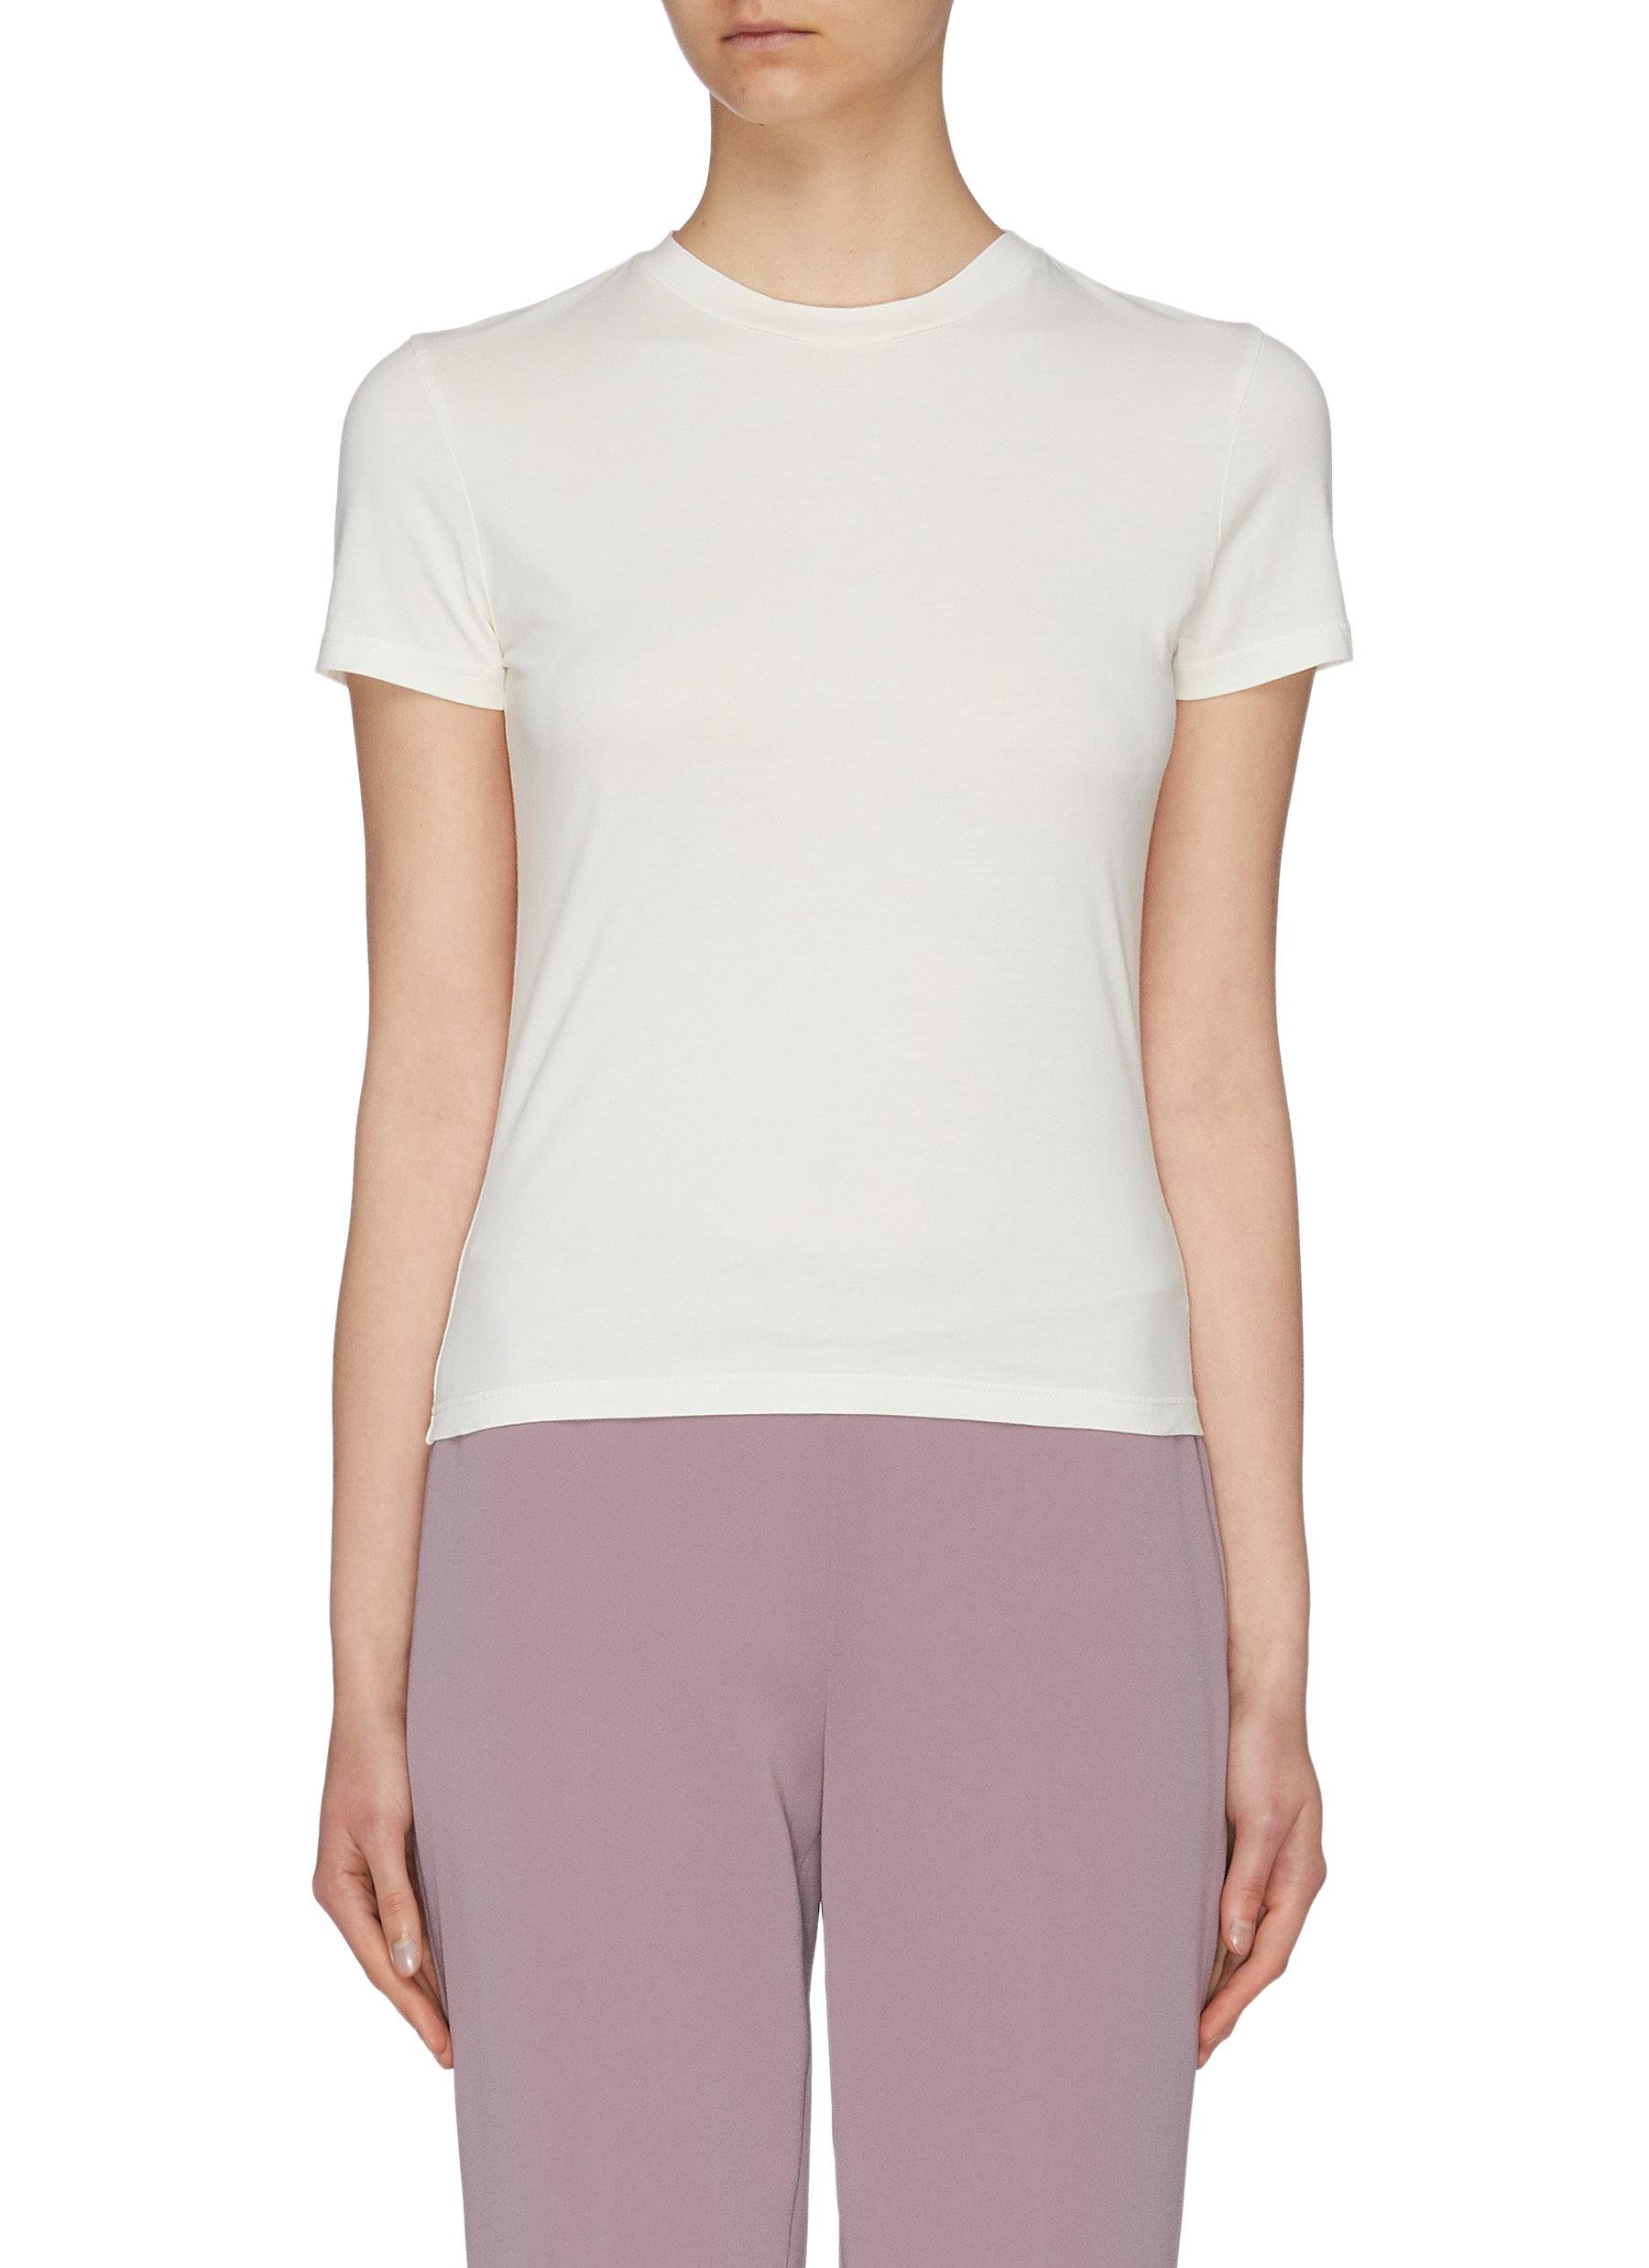 Tiny slim fit Pima cotton T-shirt by Theory